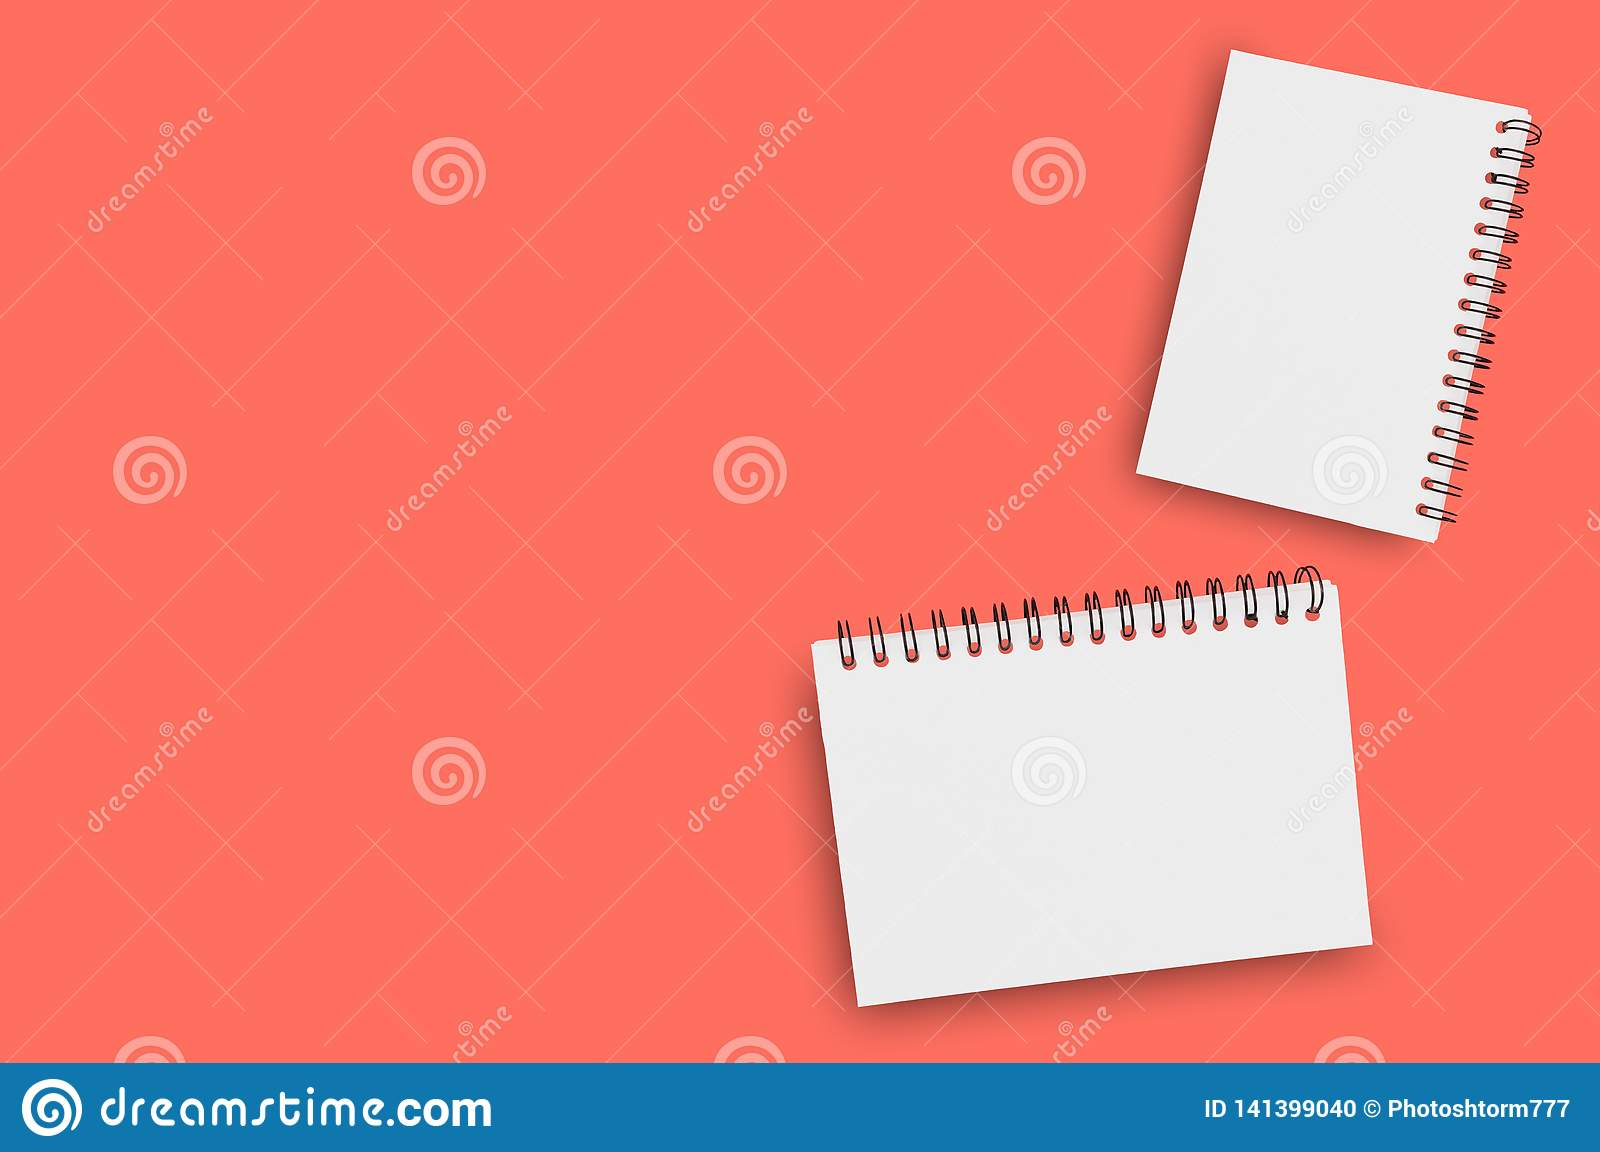 Pair of blank paper notepads with spiral wire for note or drawing on background of living coral color. Copy space for your text